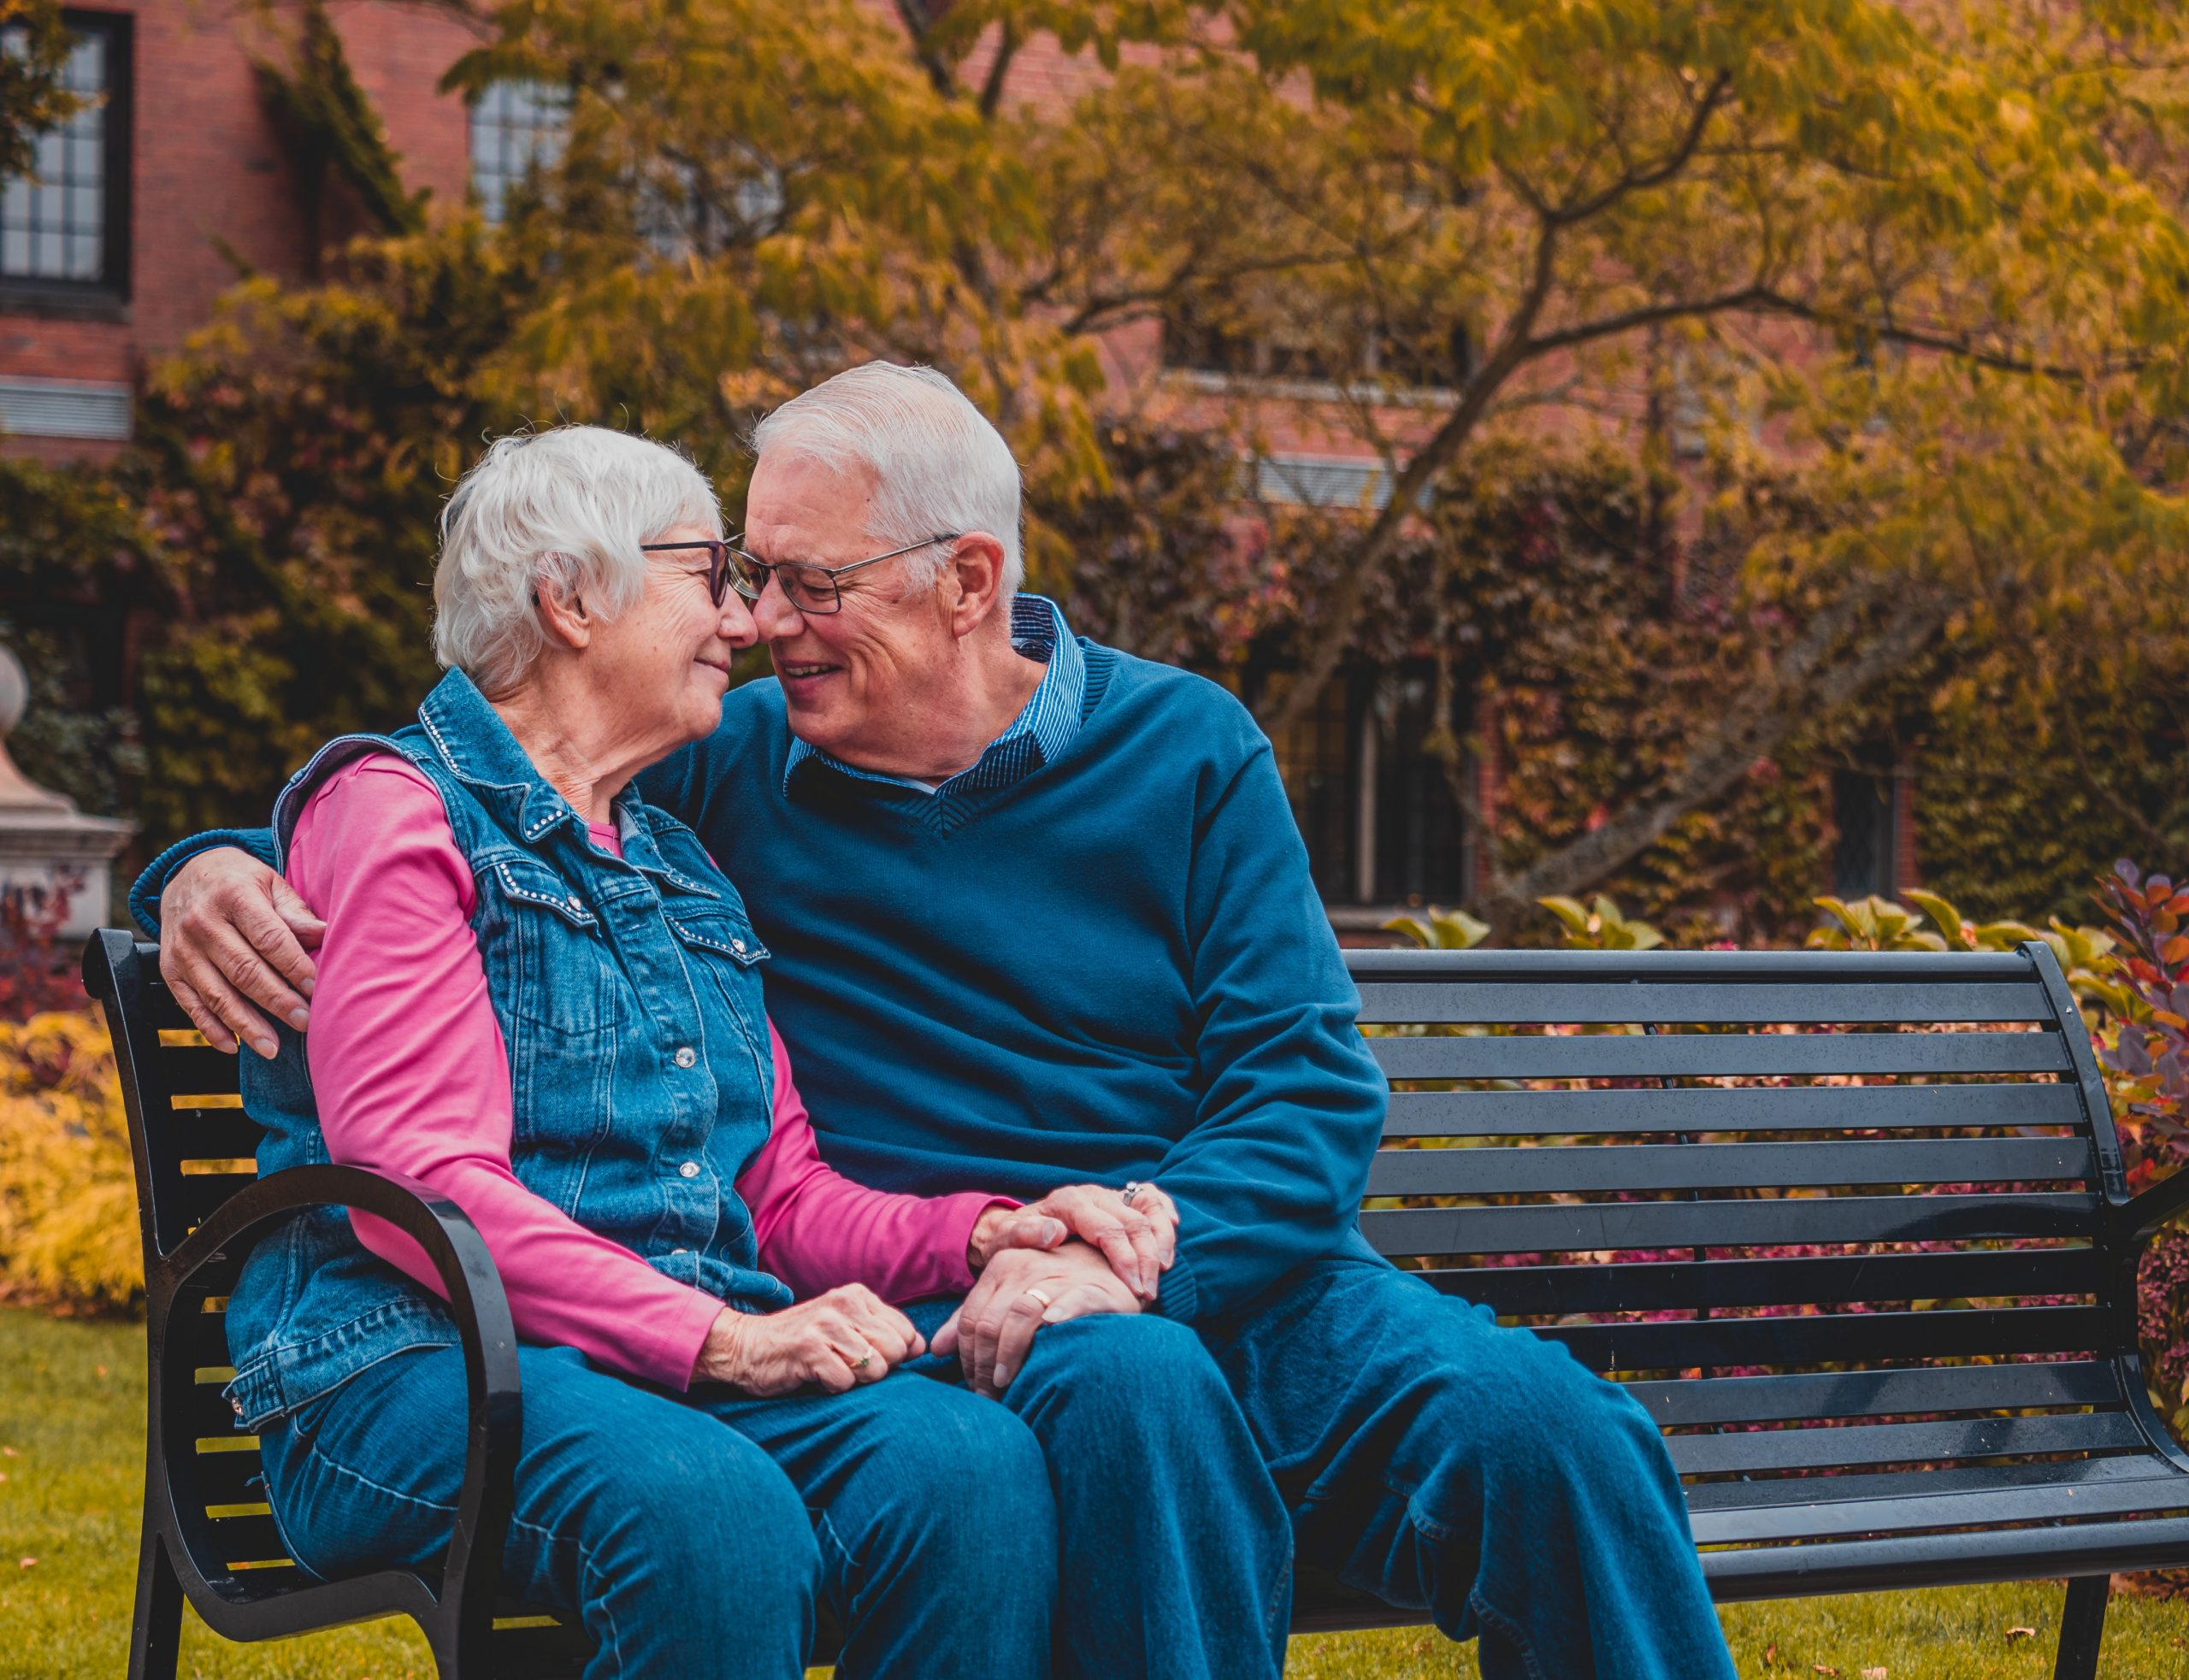 Alzheimer's: What Do I Need To Know?